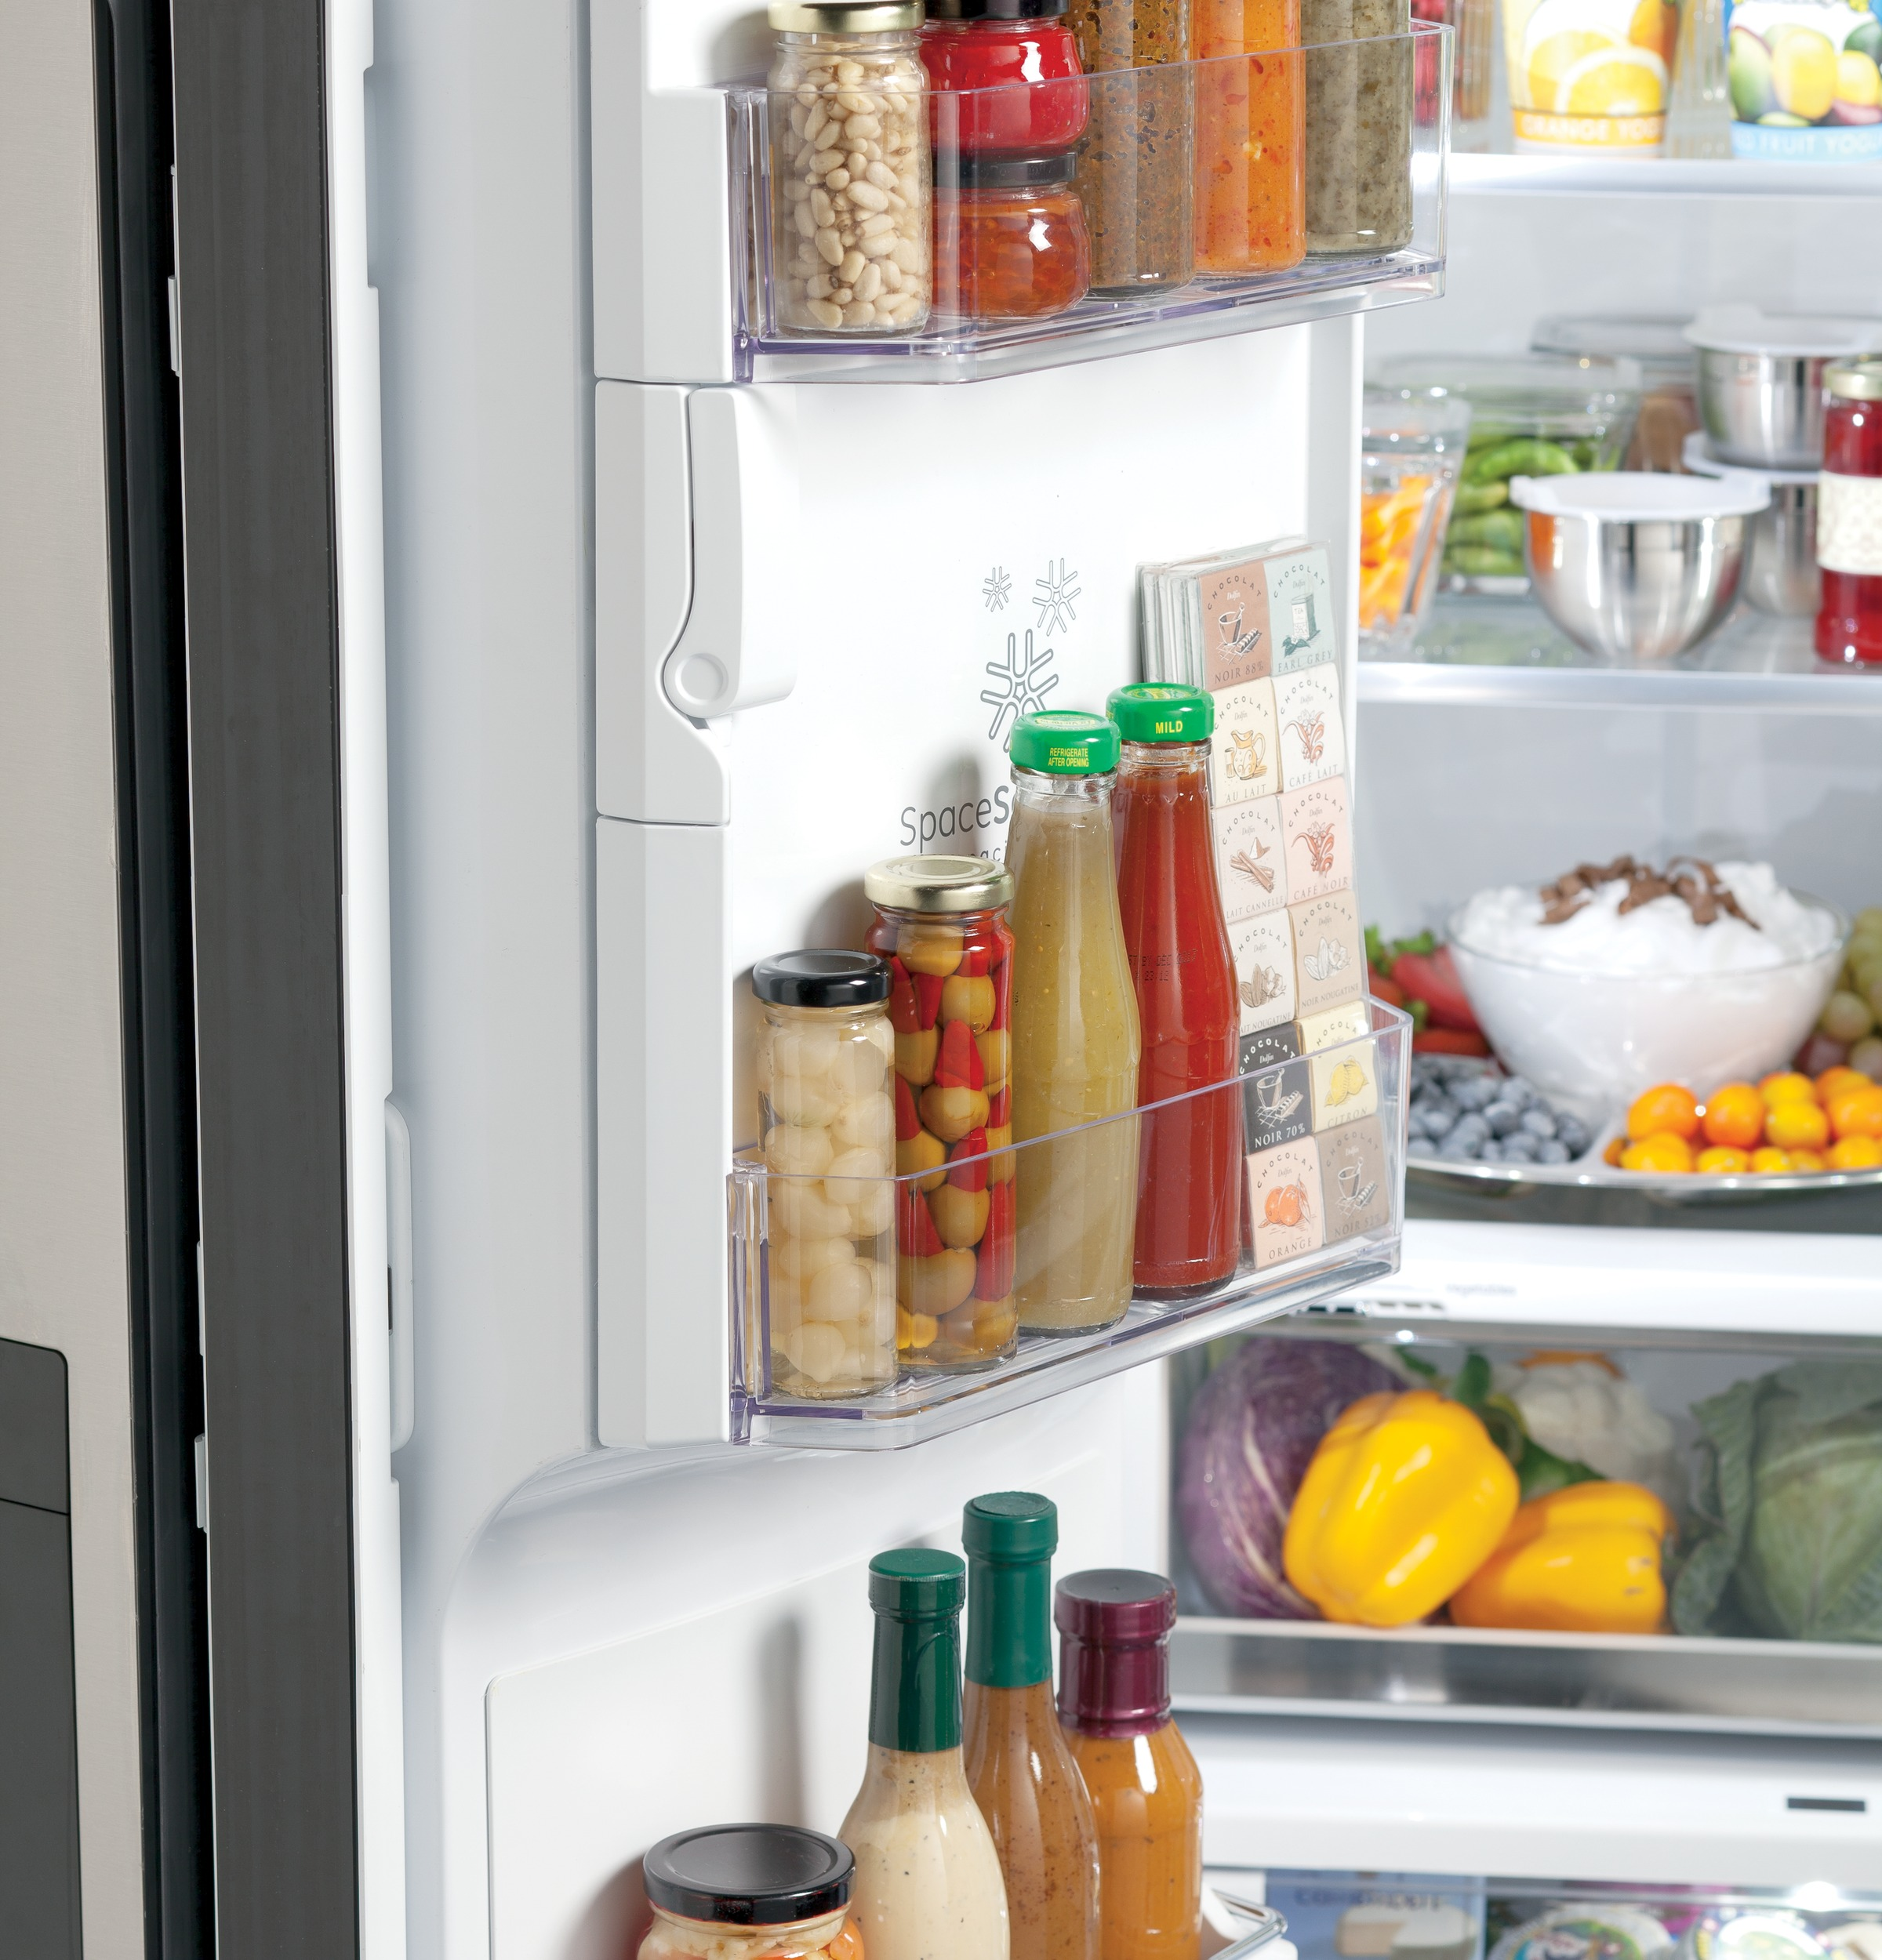 Ge caf series energy star 278 cu ft french door refrigerator product image rubansaba